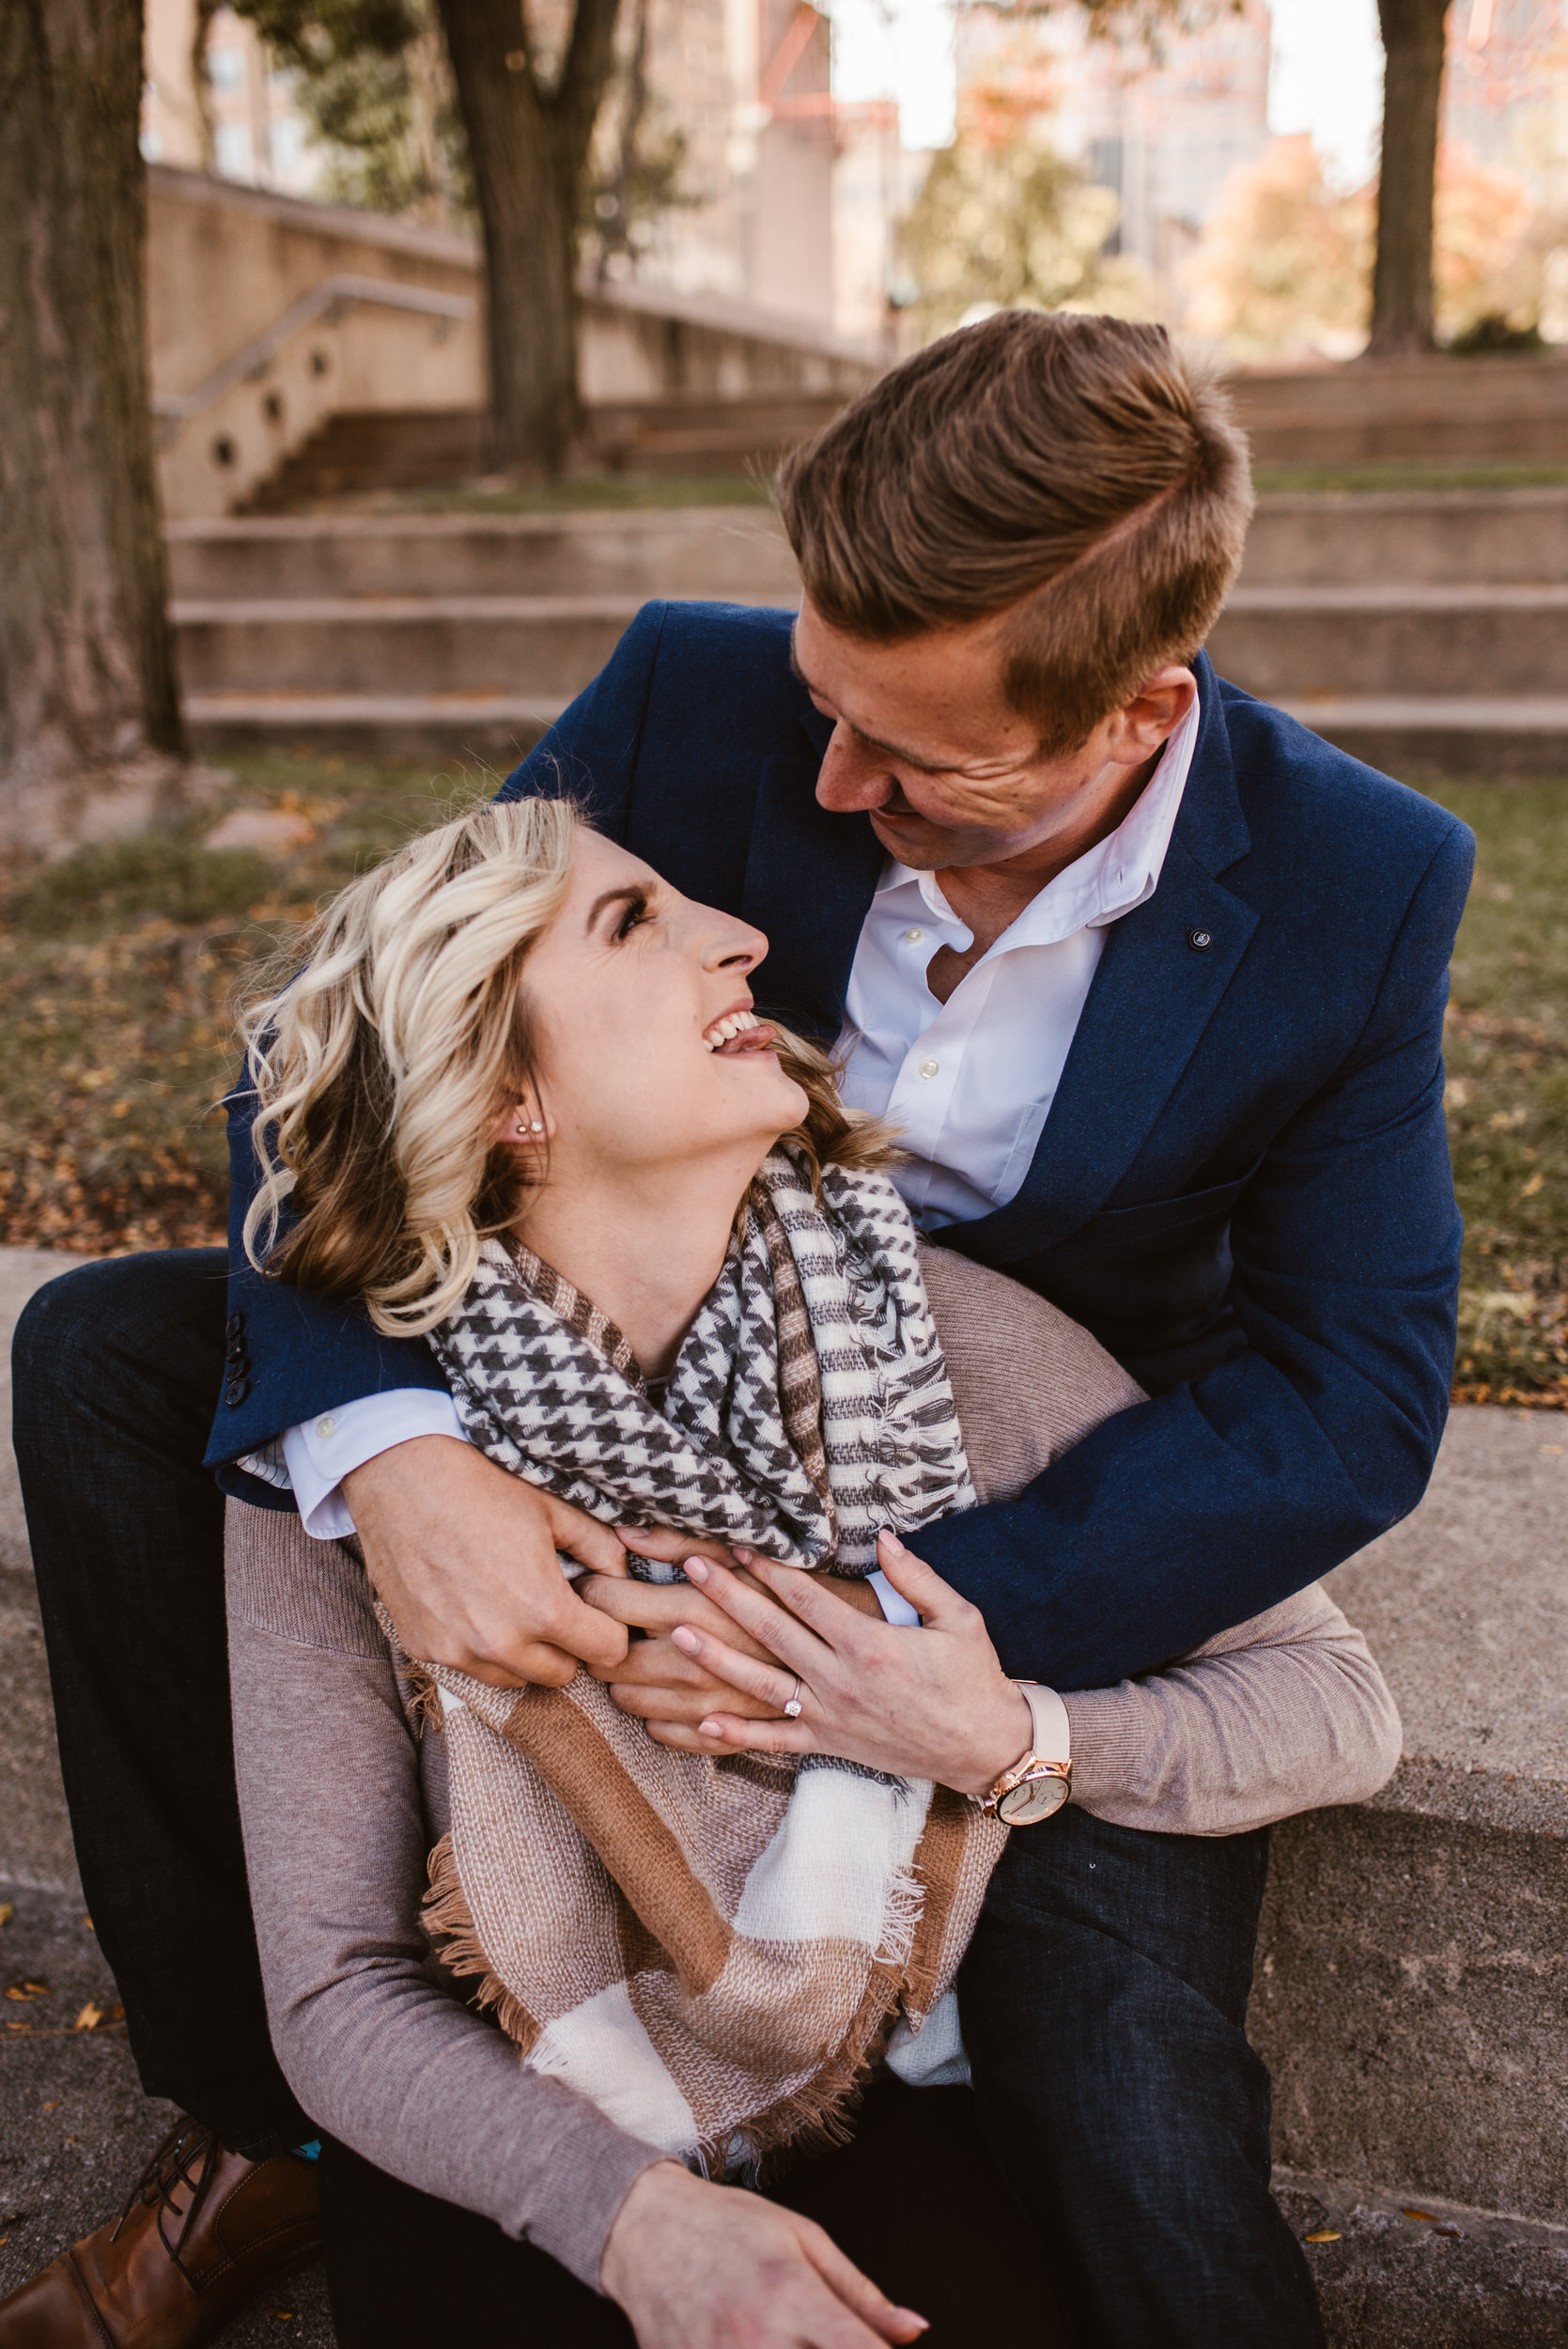 Gene Leahy Mall Omaha Engagement Session Kaylie Sirek Photography 02.jpg